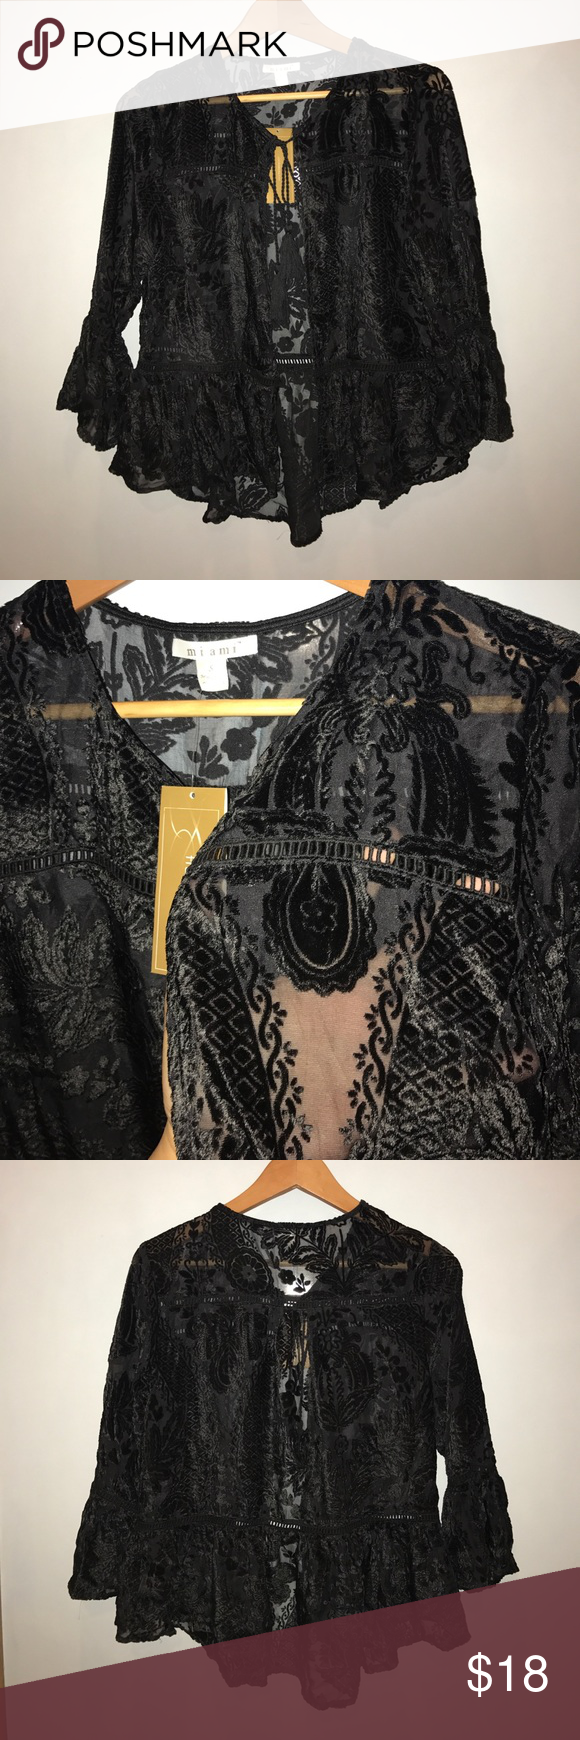 Sheer Lace Cardigan NWT | Tassels and Customer support